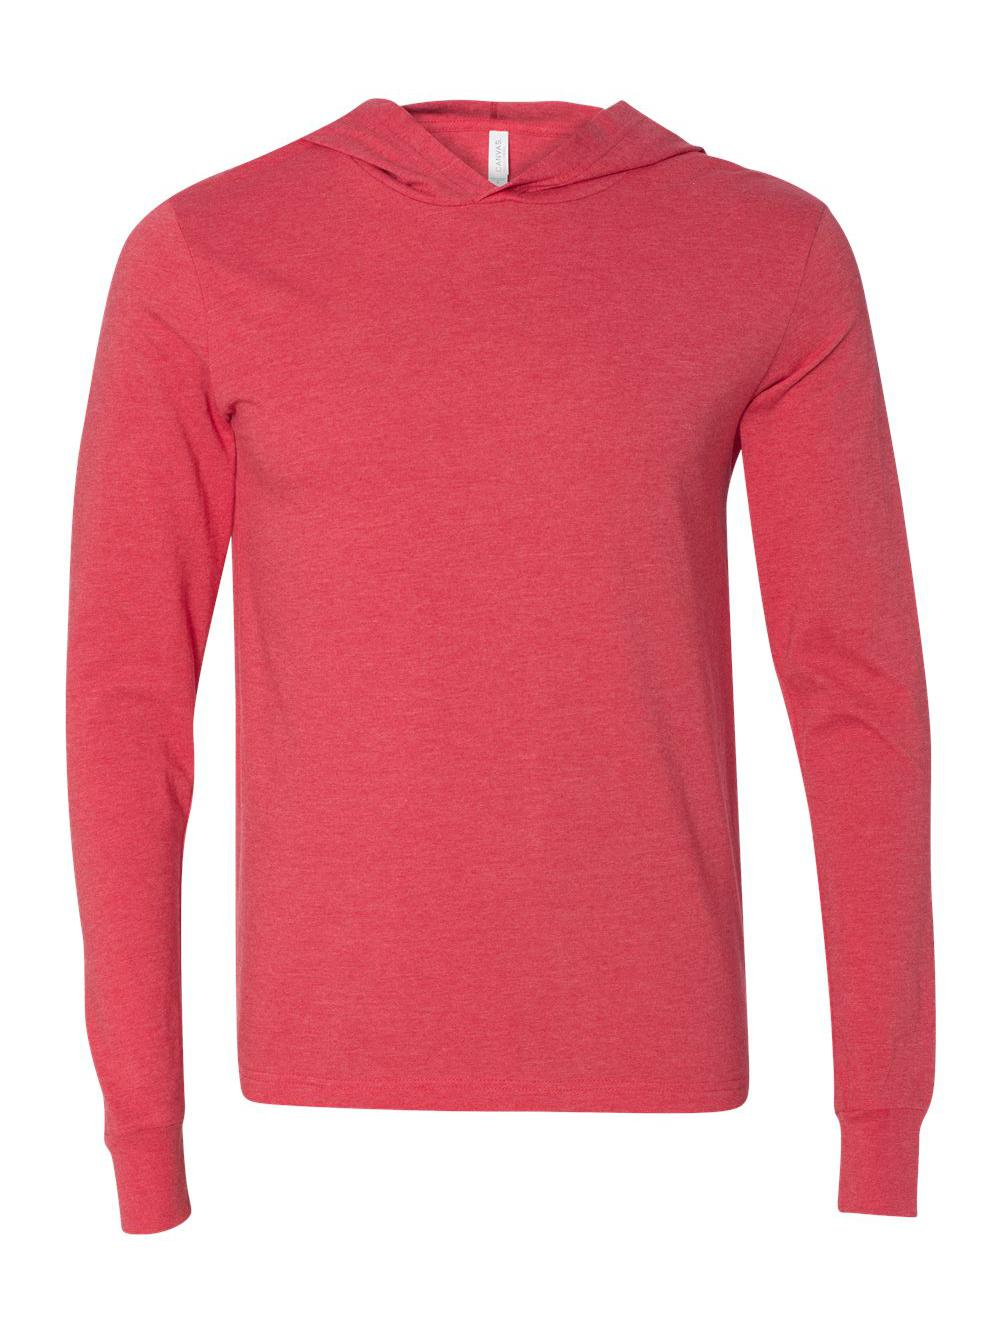 Bella-Canvas-Unisex-Long-Sleeve-Jersey-Hooded-Tee-3512 thumbnail 24